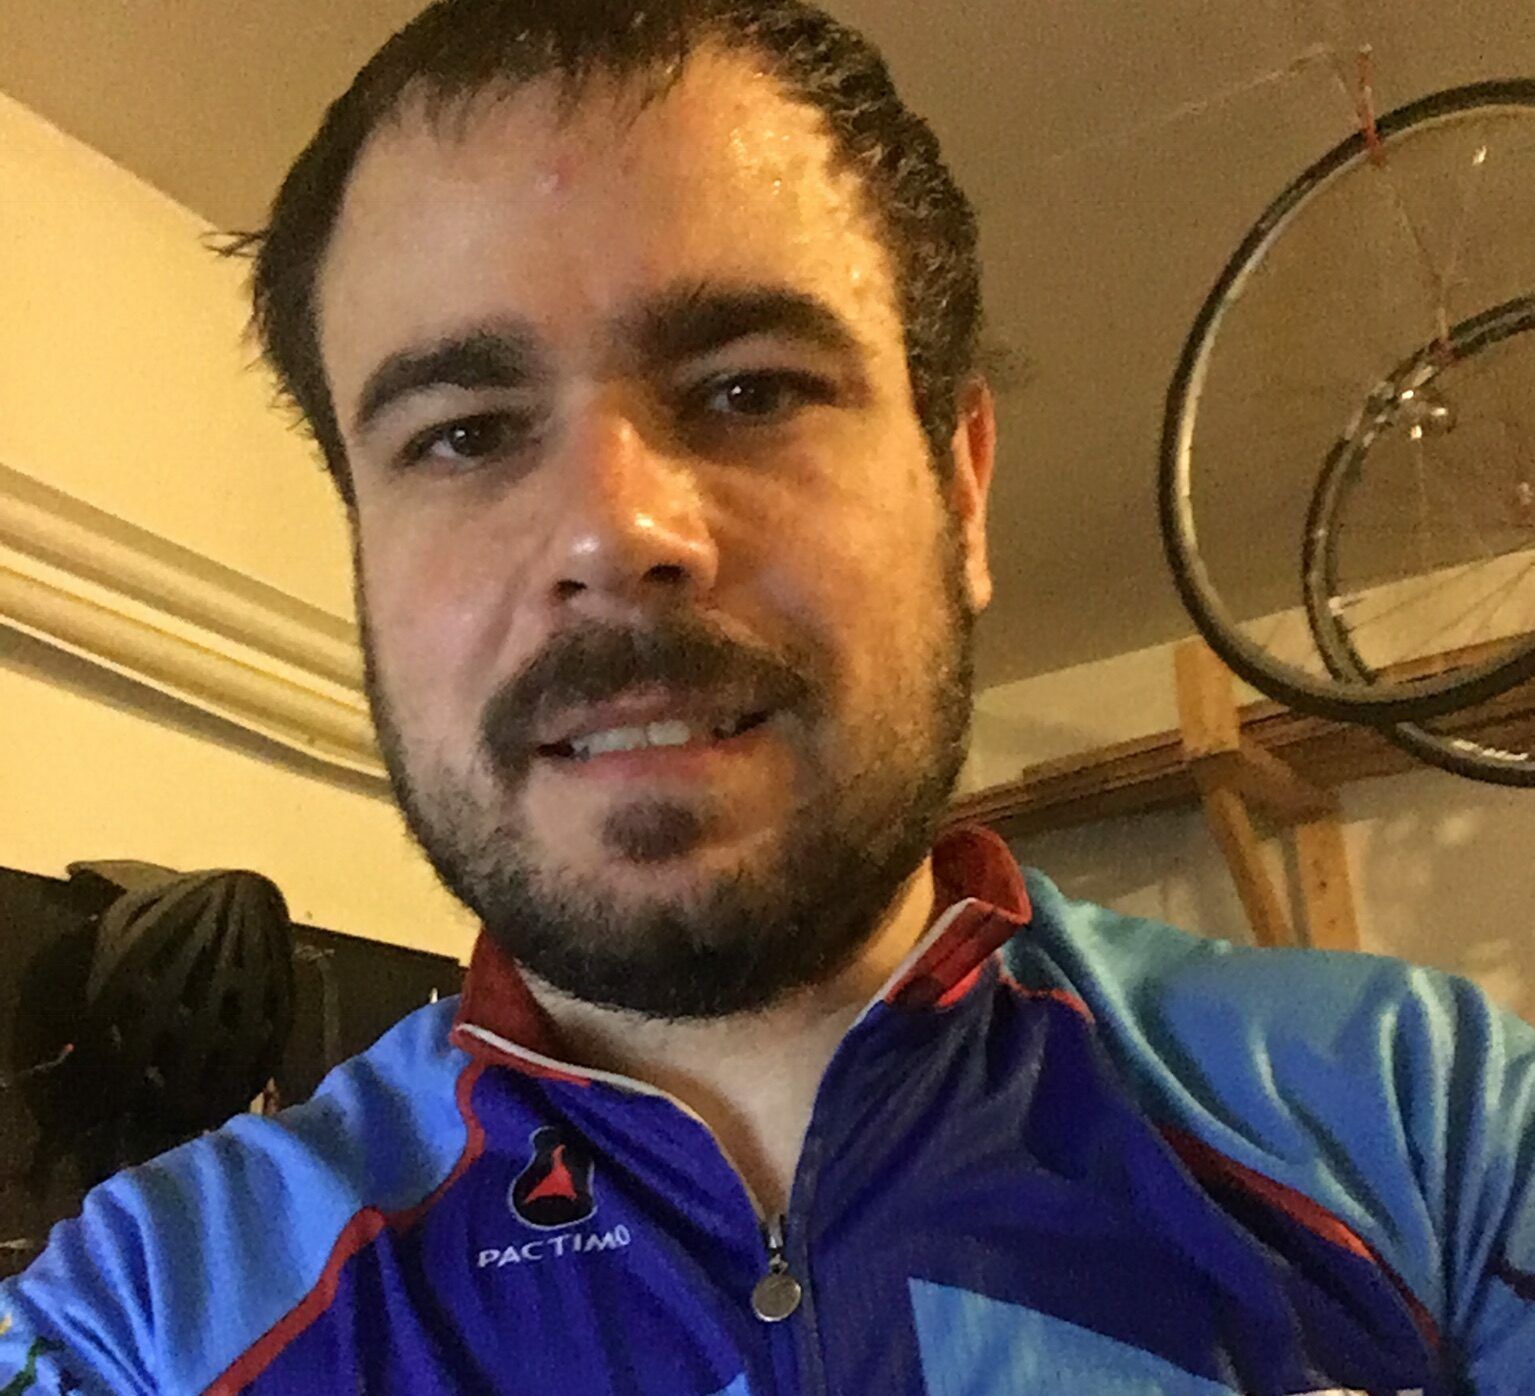 Ep 129: Matt and the Great Cycle Challenge